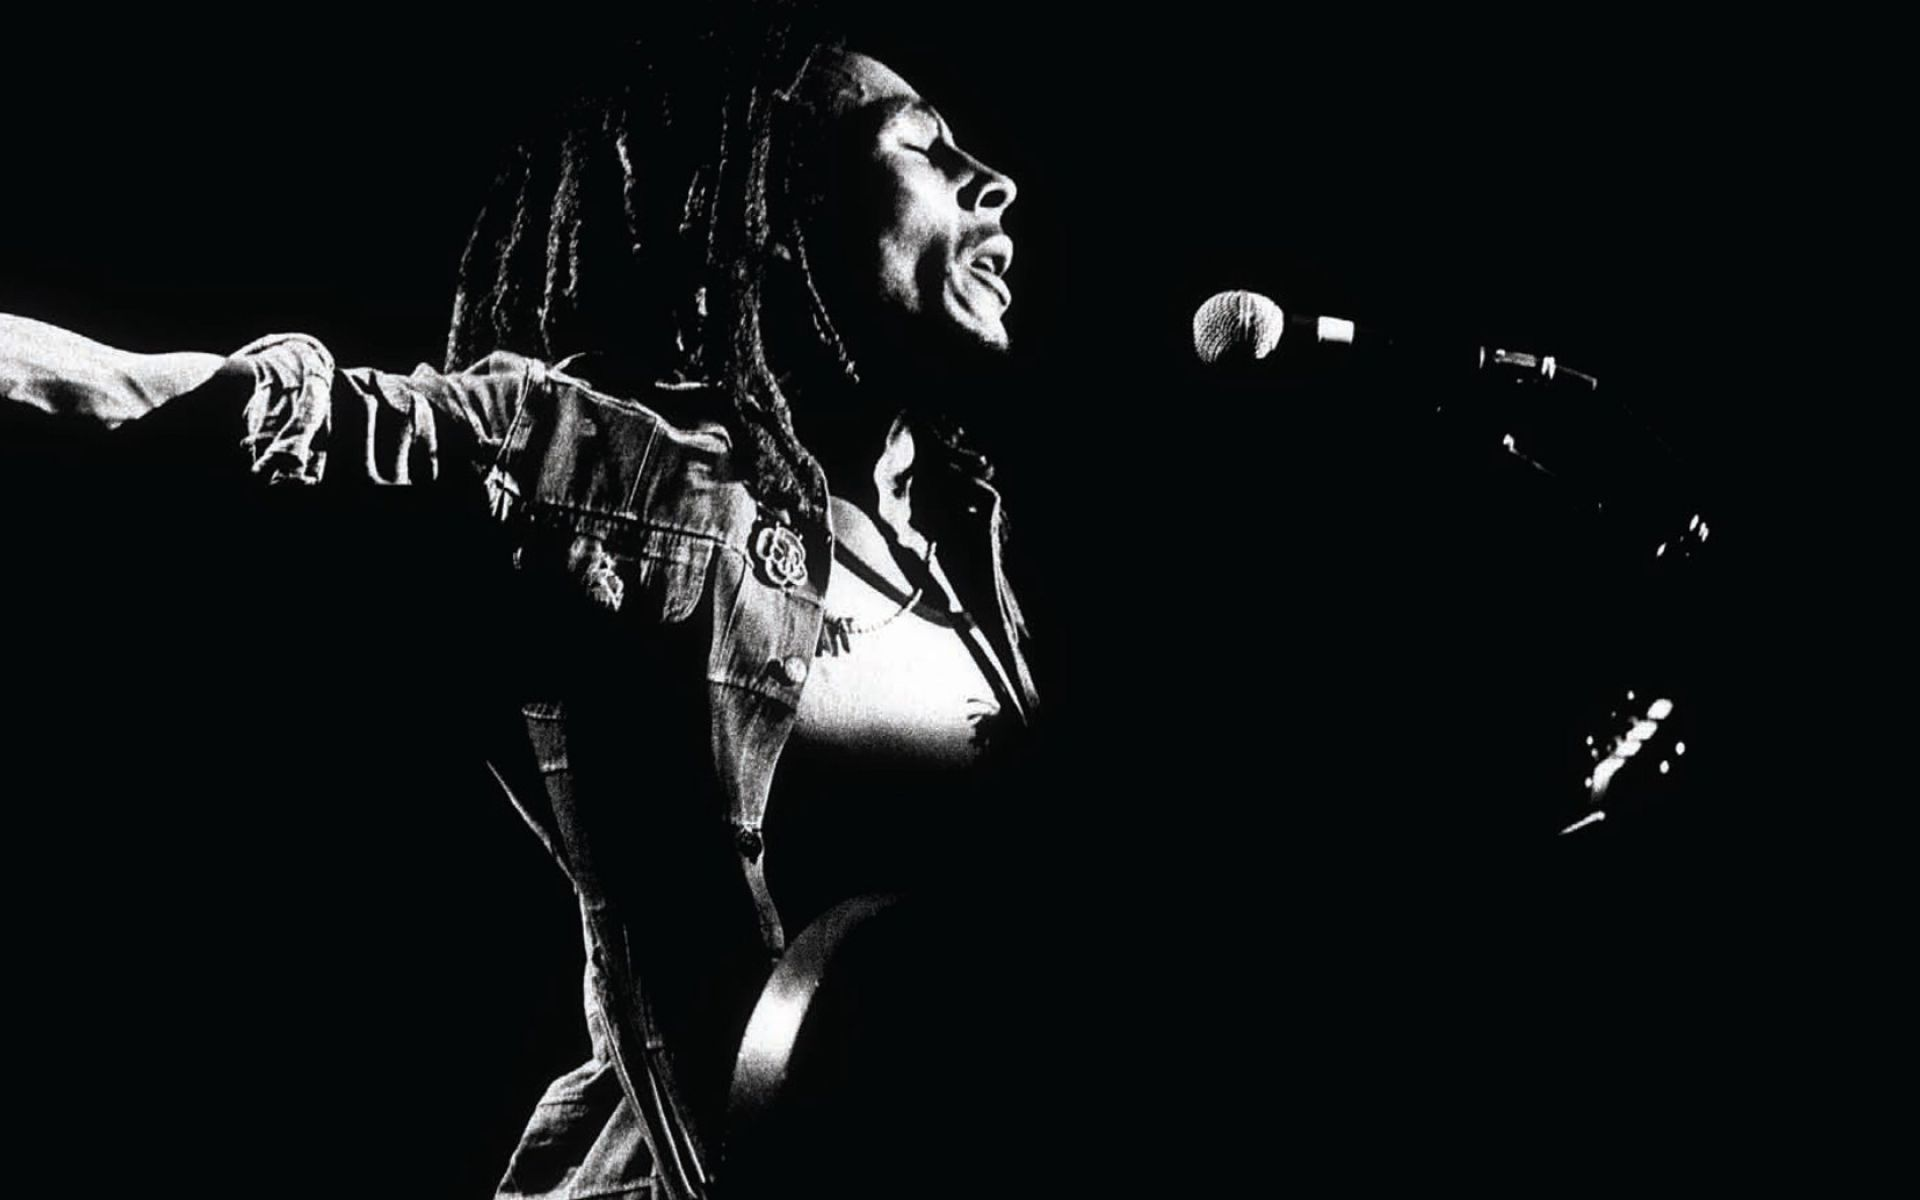 Bob Marley Live Performs Photo Black And White HD Wallpapers 1680x1050px Desktop Free